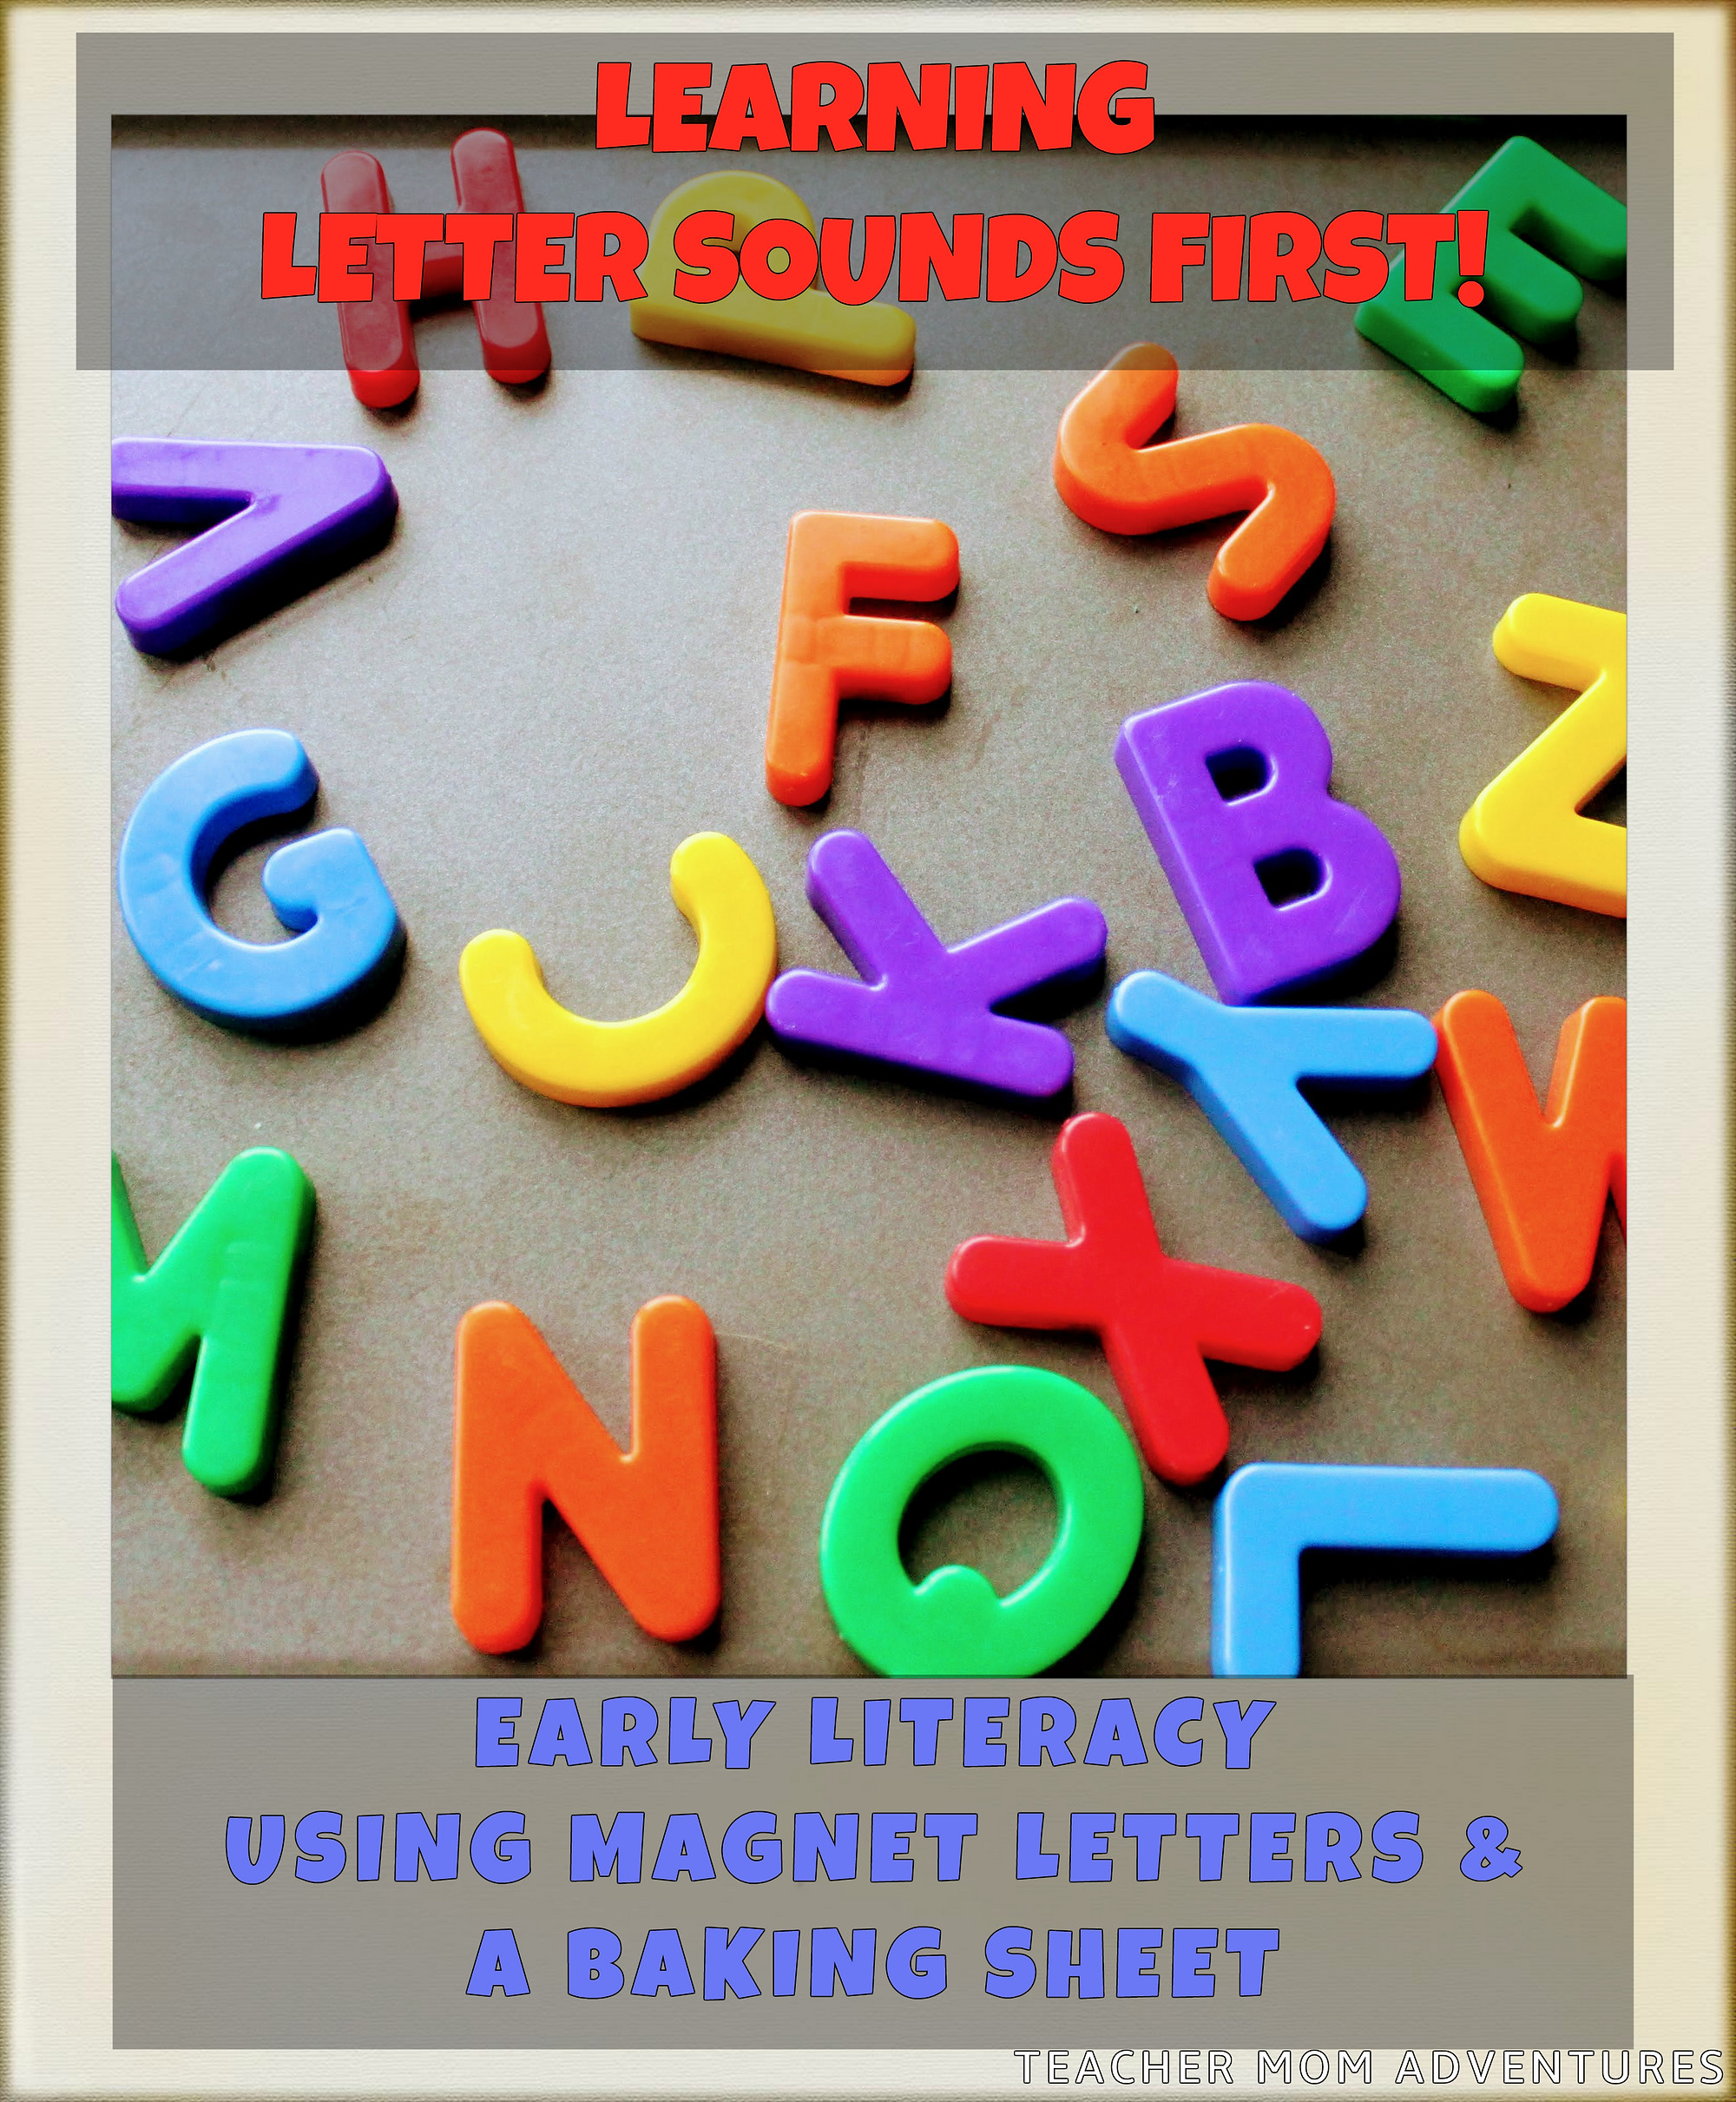 Learning Letter Sounds First